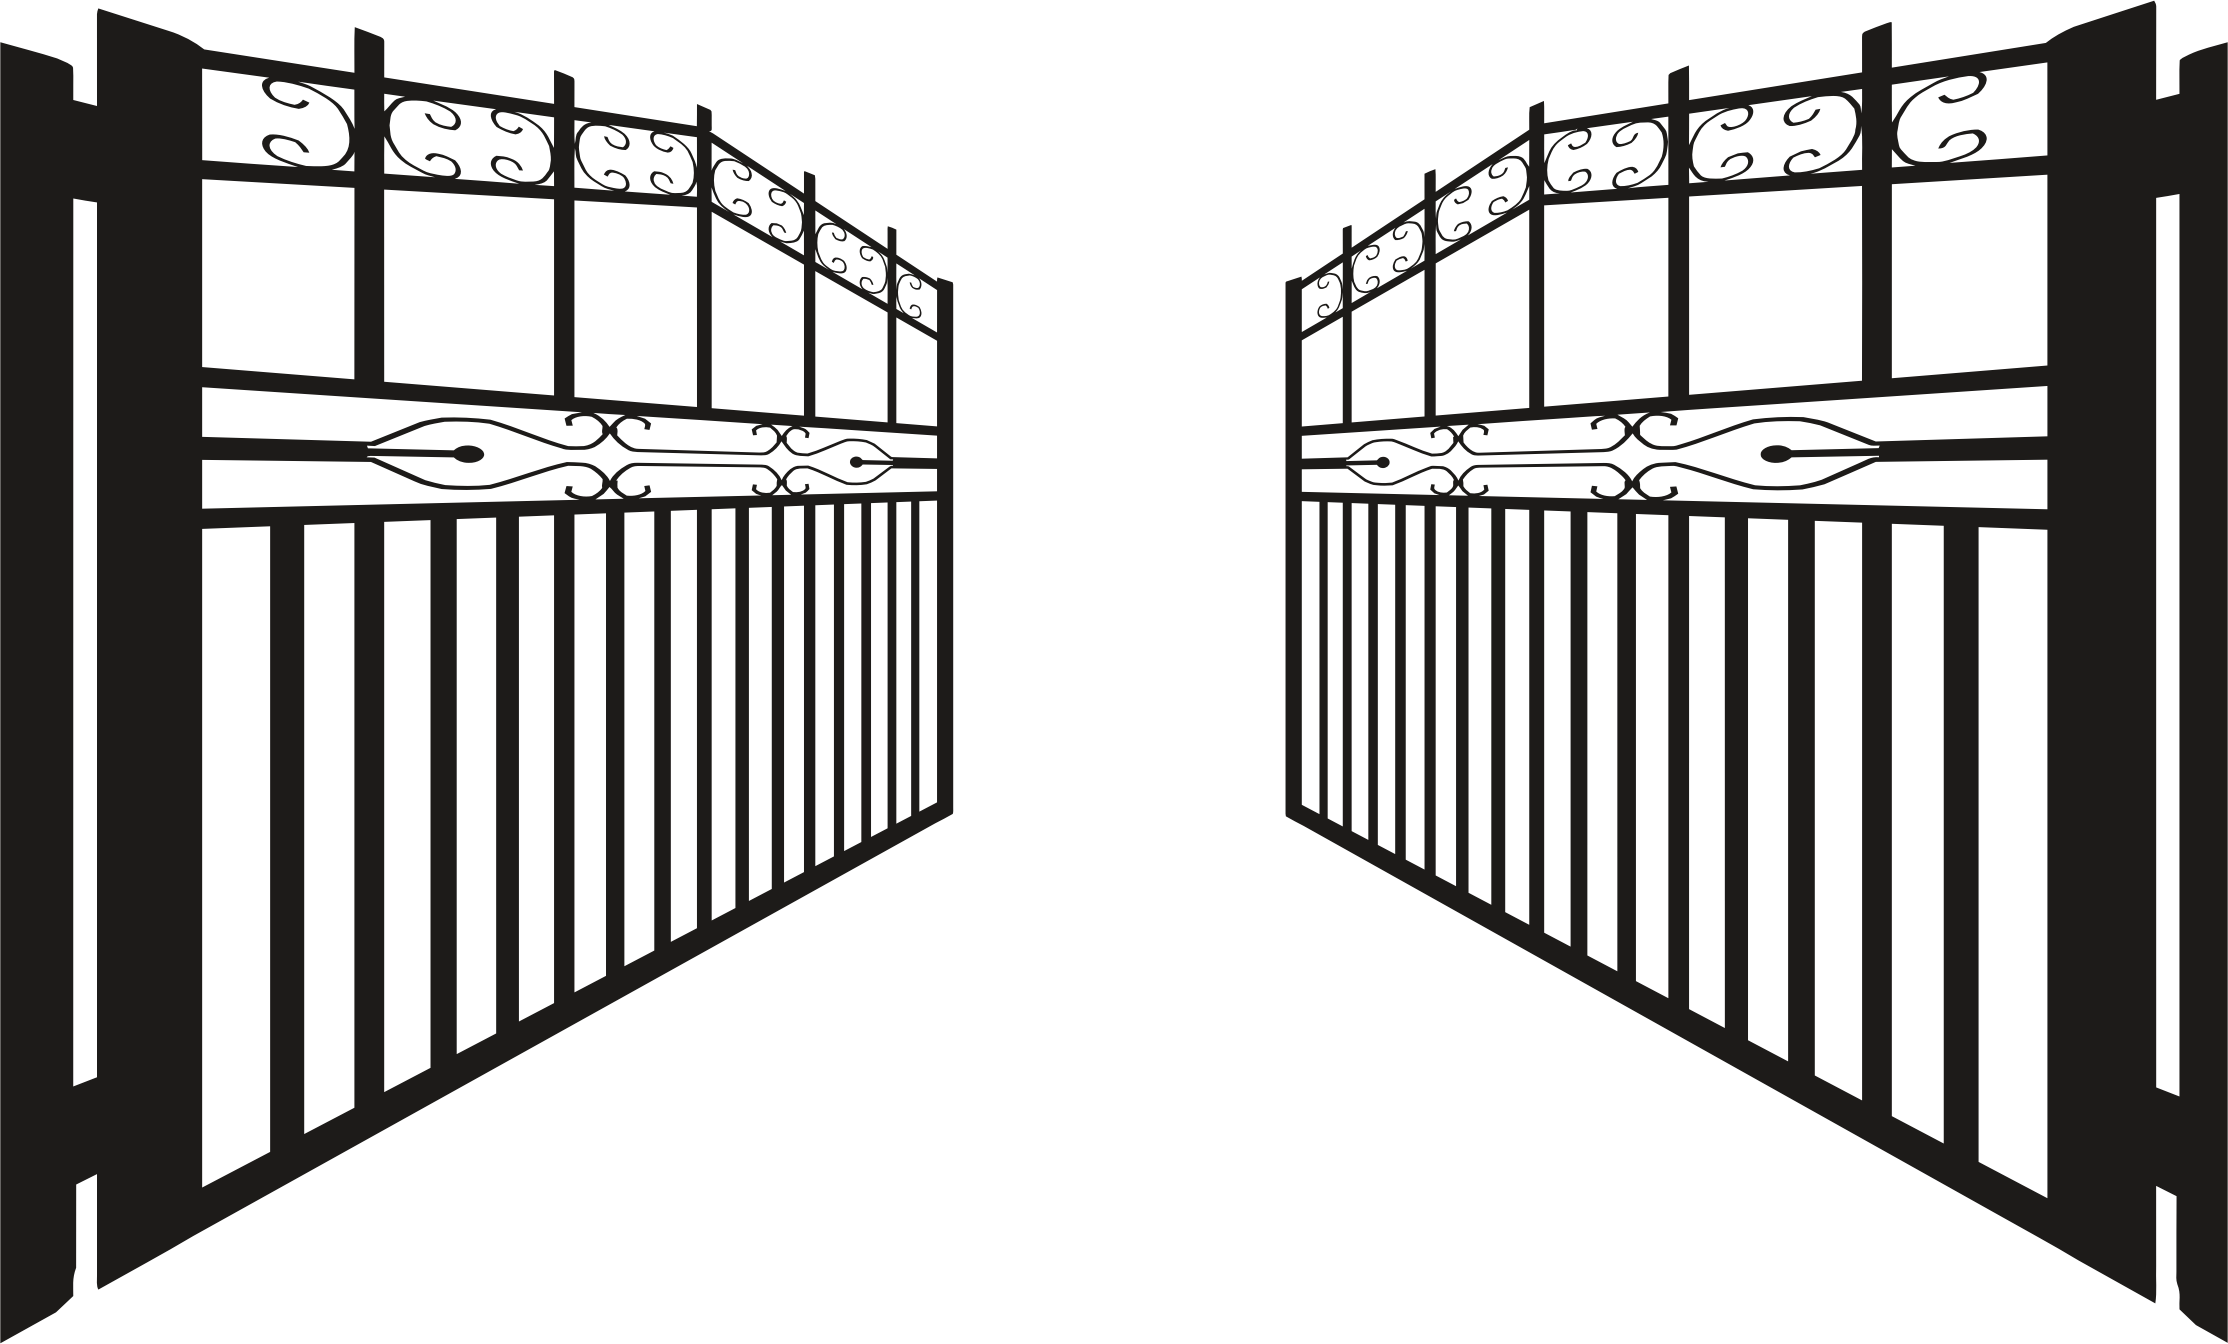 Open gate png transparent images pluspng